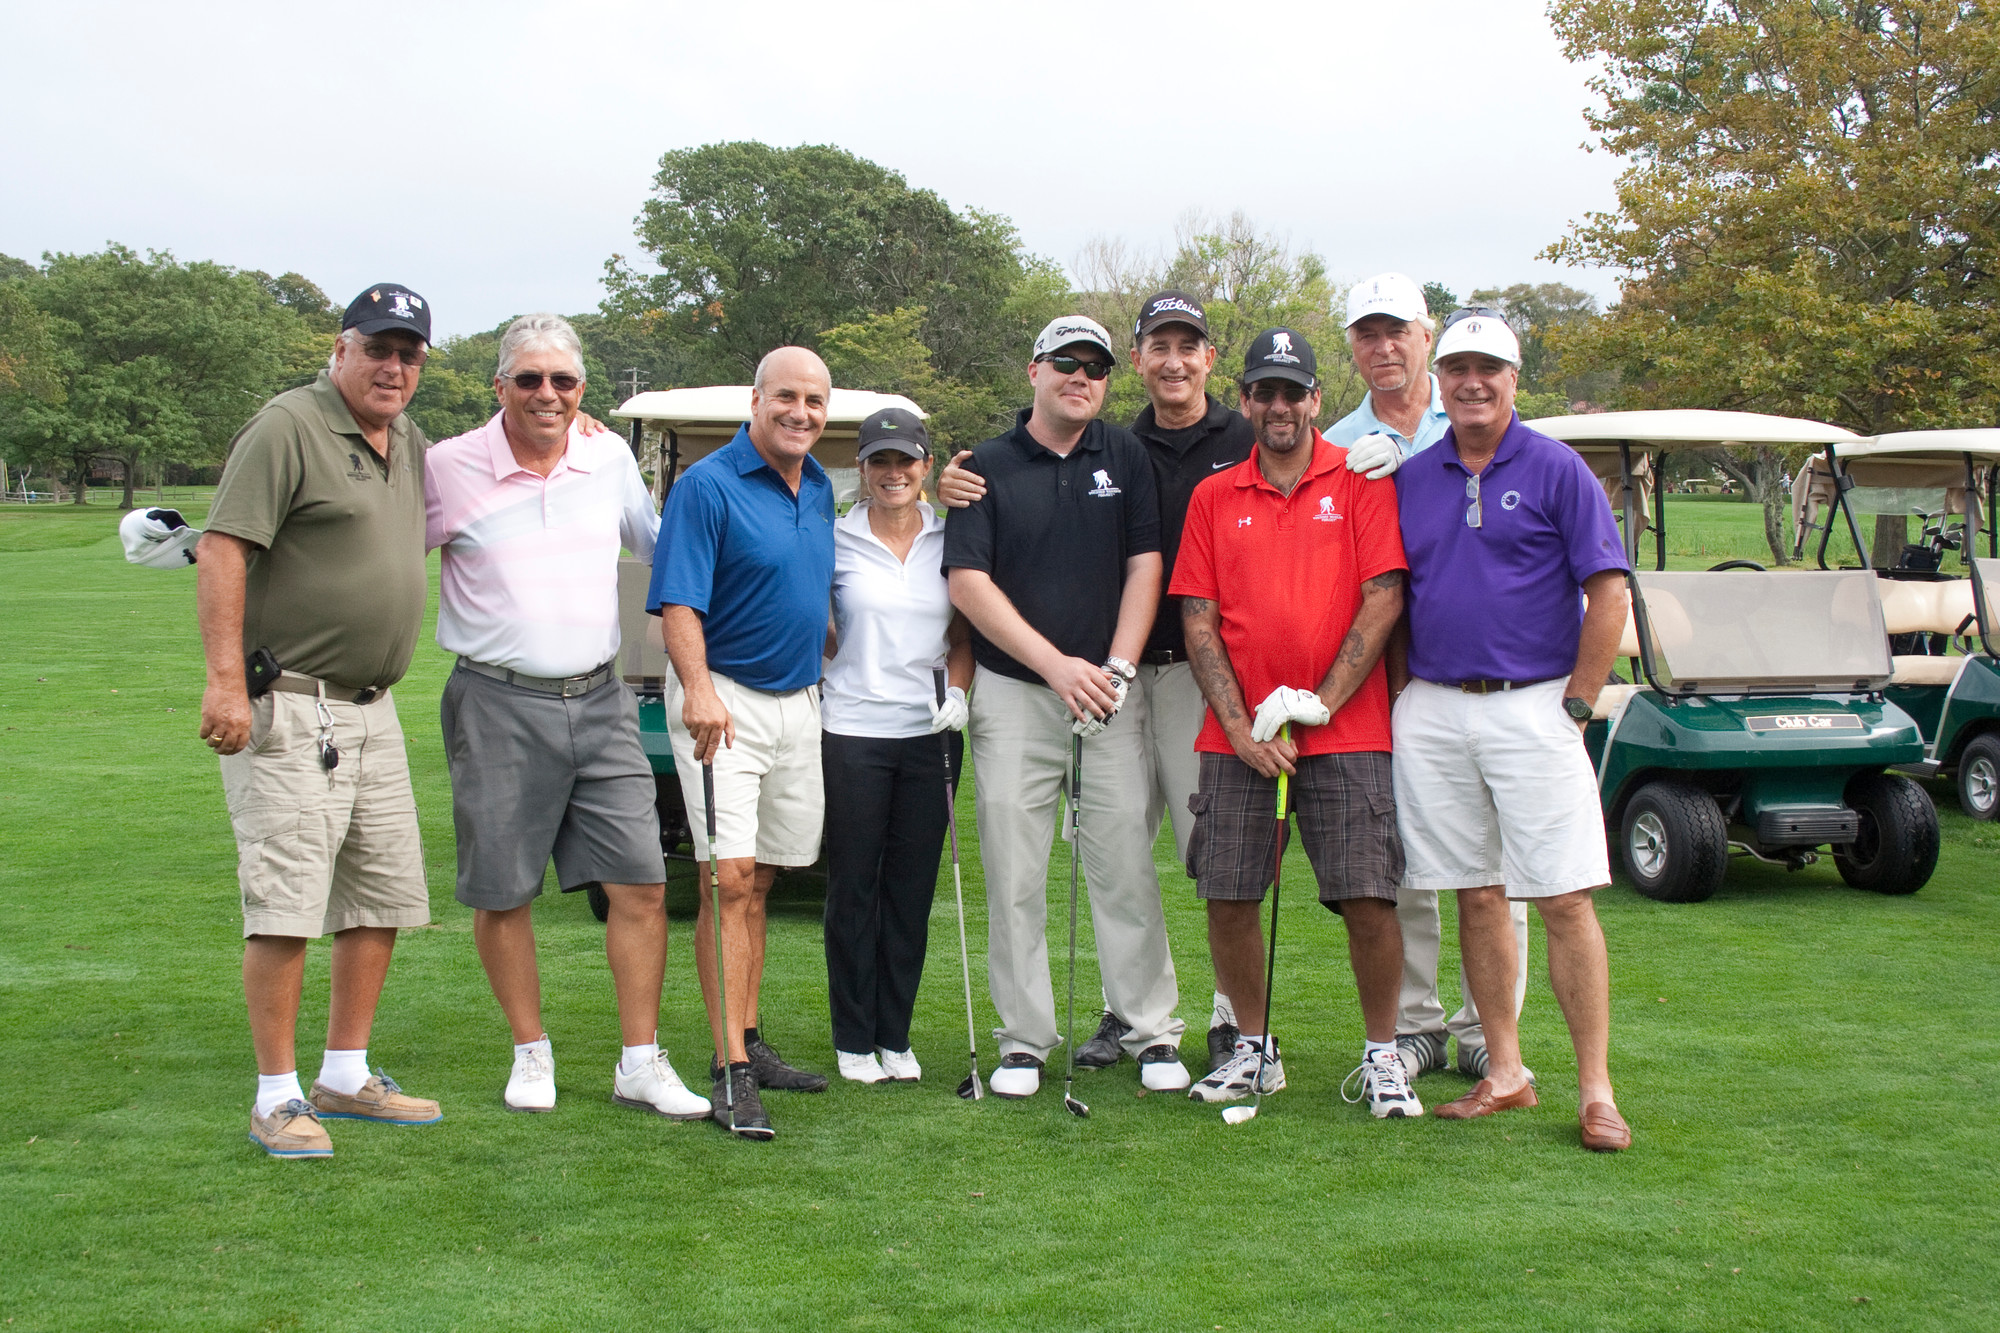 Military veterans from the Wounded Warrior Project and Lawrence club members played a round of golf. From left were Paul Hastings, an ambassador for the Wounded Warrior Project, Henry Daley, Gary Segal, Donna Martocci, Veteran Mark Dennington, Jack Eig, veteran Tom Amendola, John Maser and Robert Weinberg.